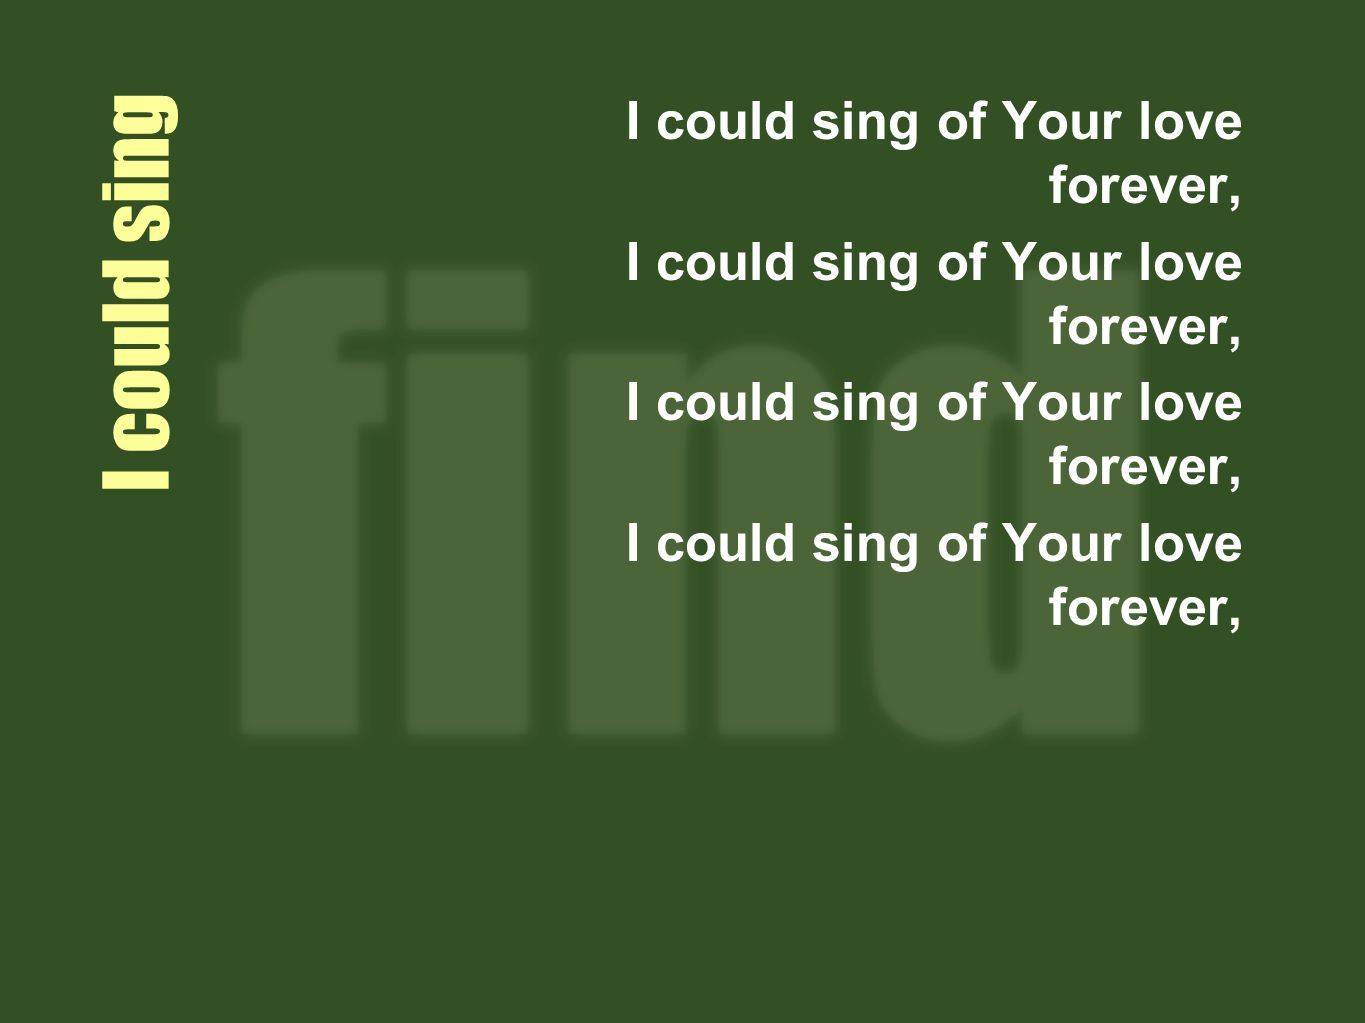 I could sing of Your love forever,